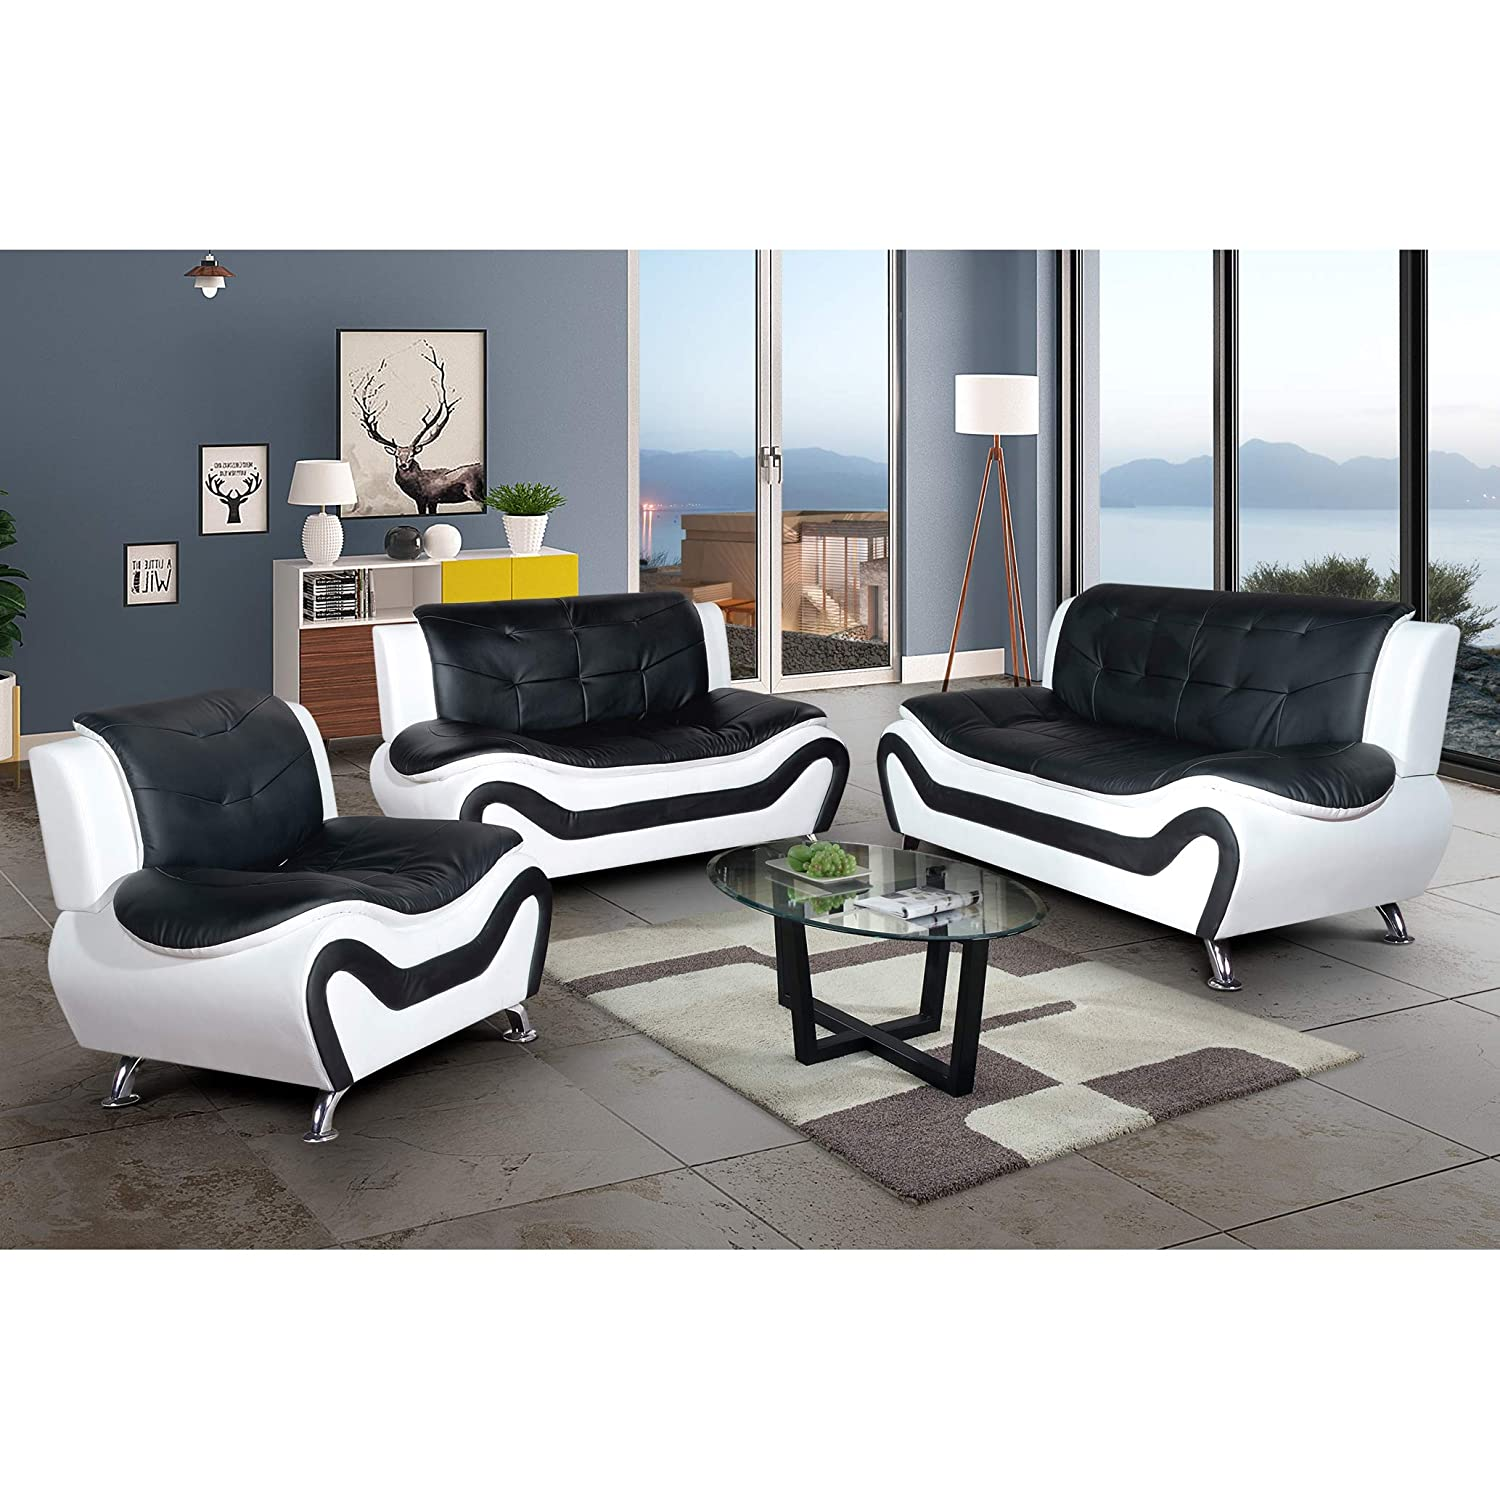 Amazon com aycp furniture modern sofa for living room comfortable 3 piece faux leather blk white set kitchen dining